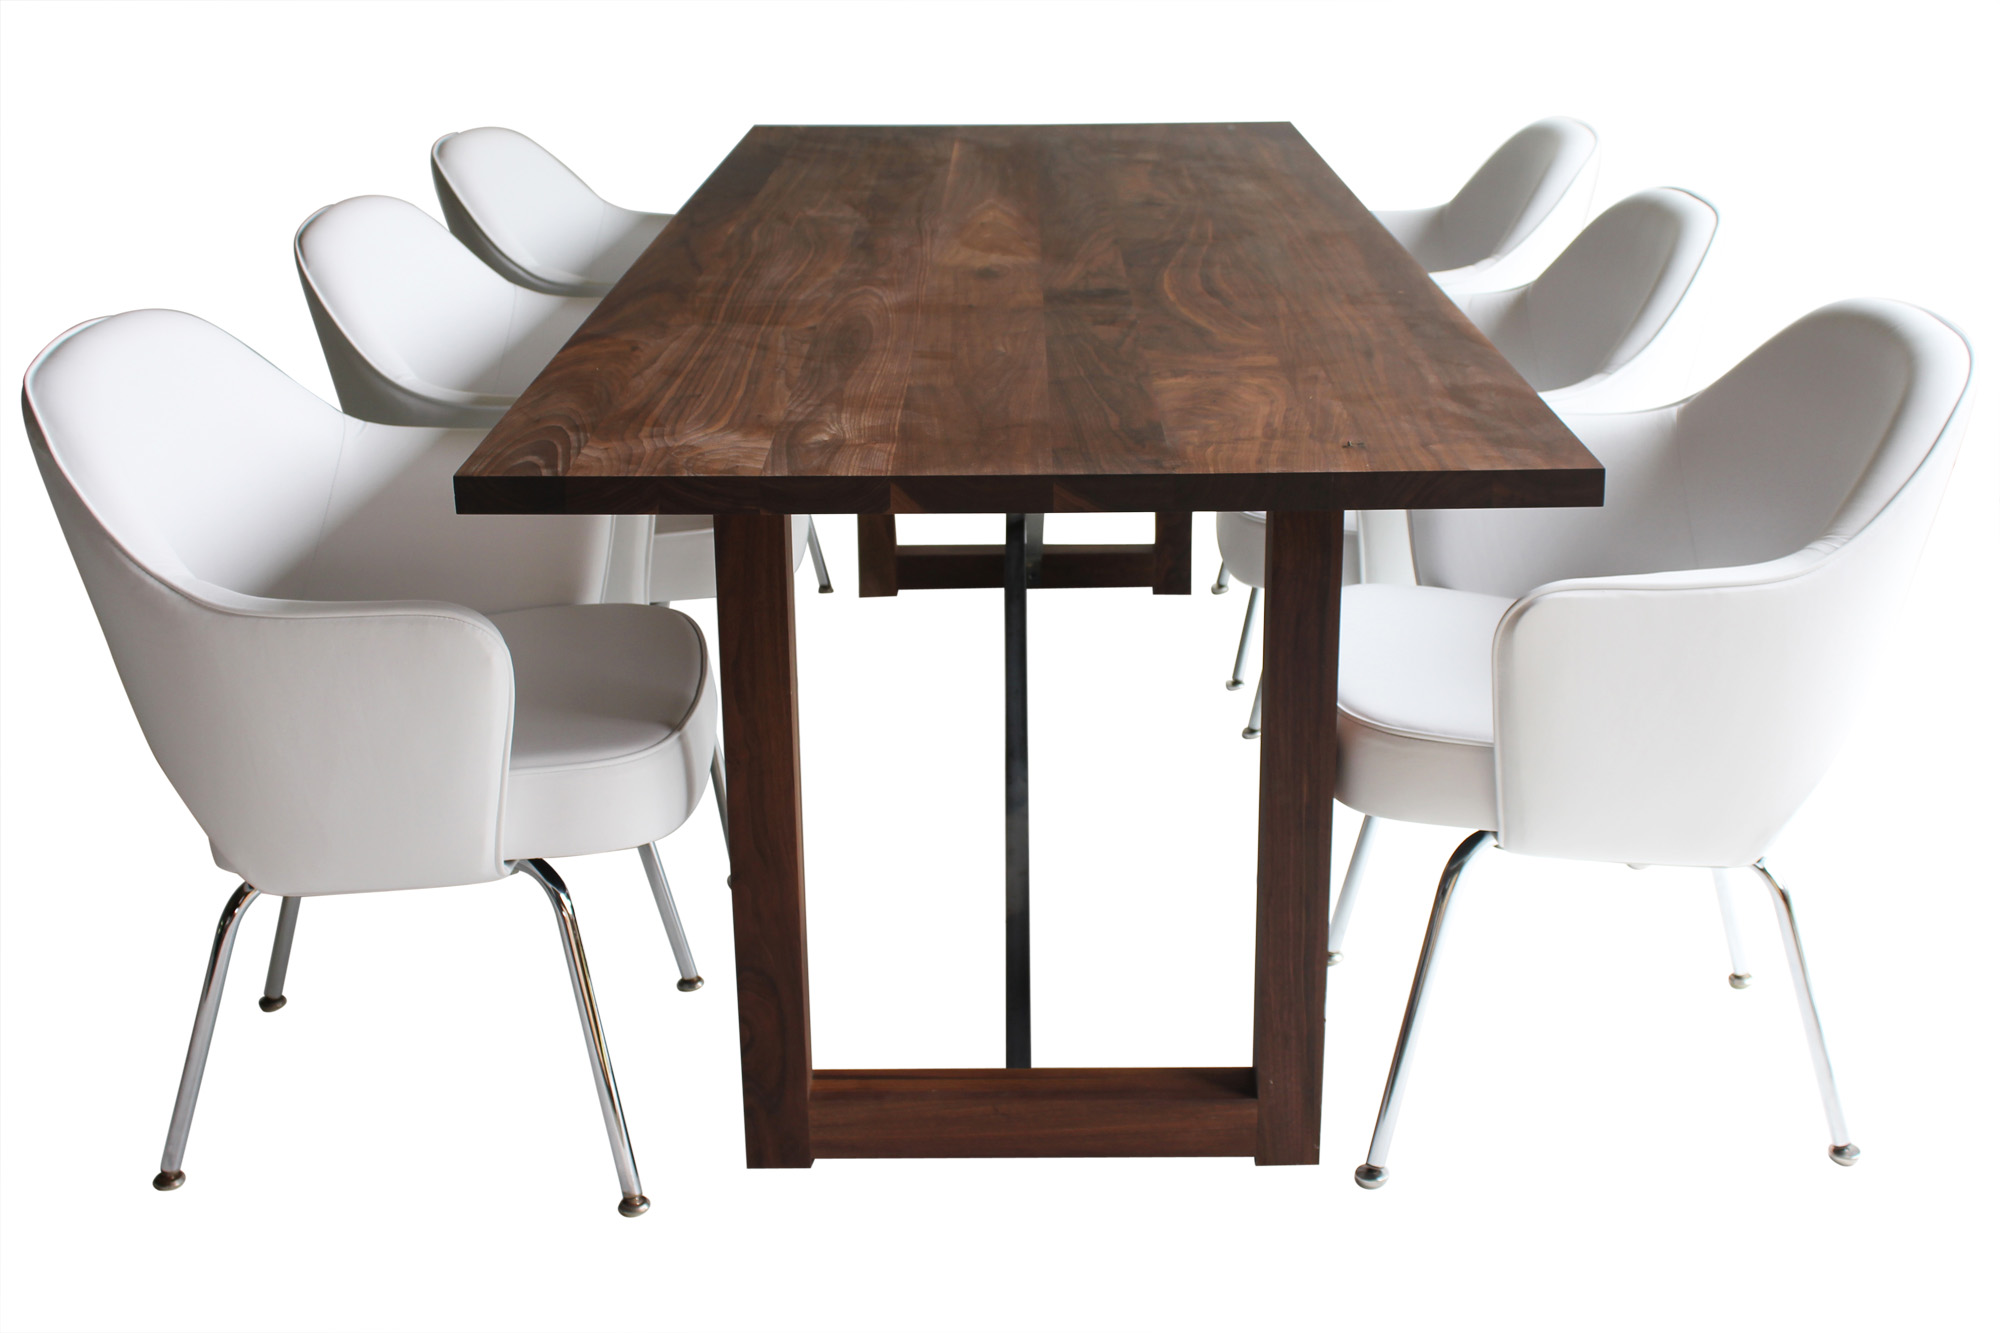 Zoom image Modern Dining Table 0116 Contemporary, Industrial, Transitional,  Rustic Folk, Organic, MidCentury